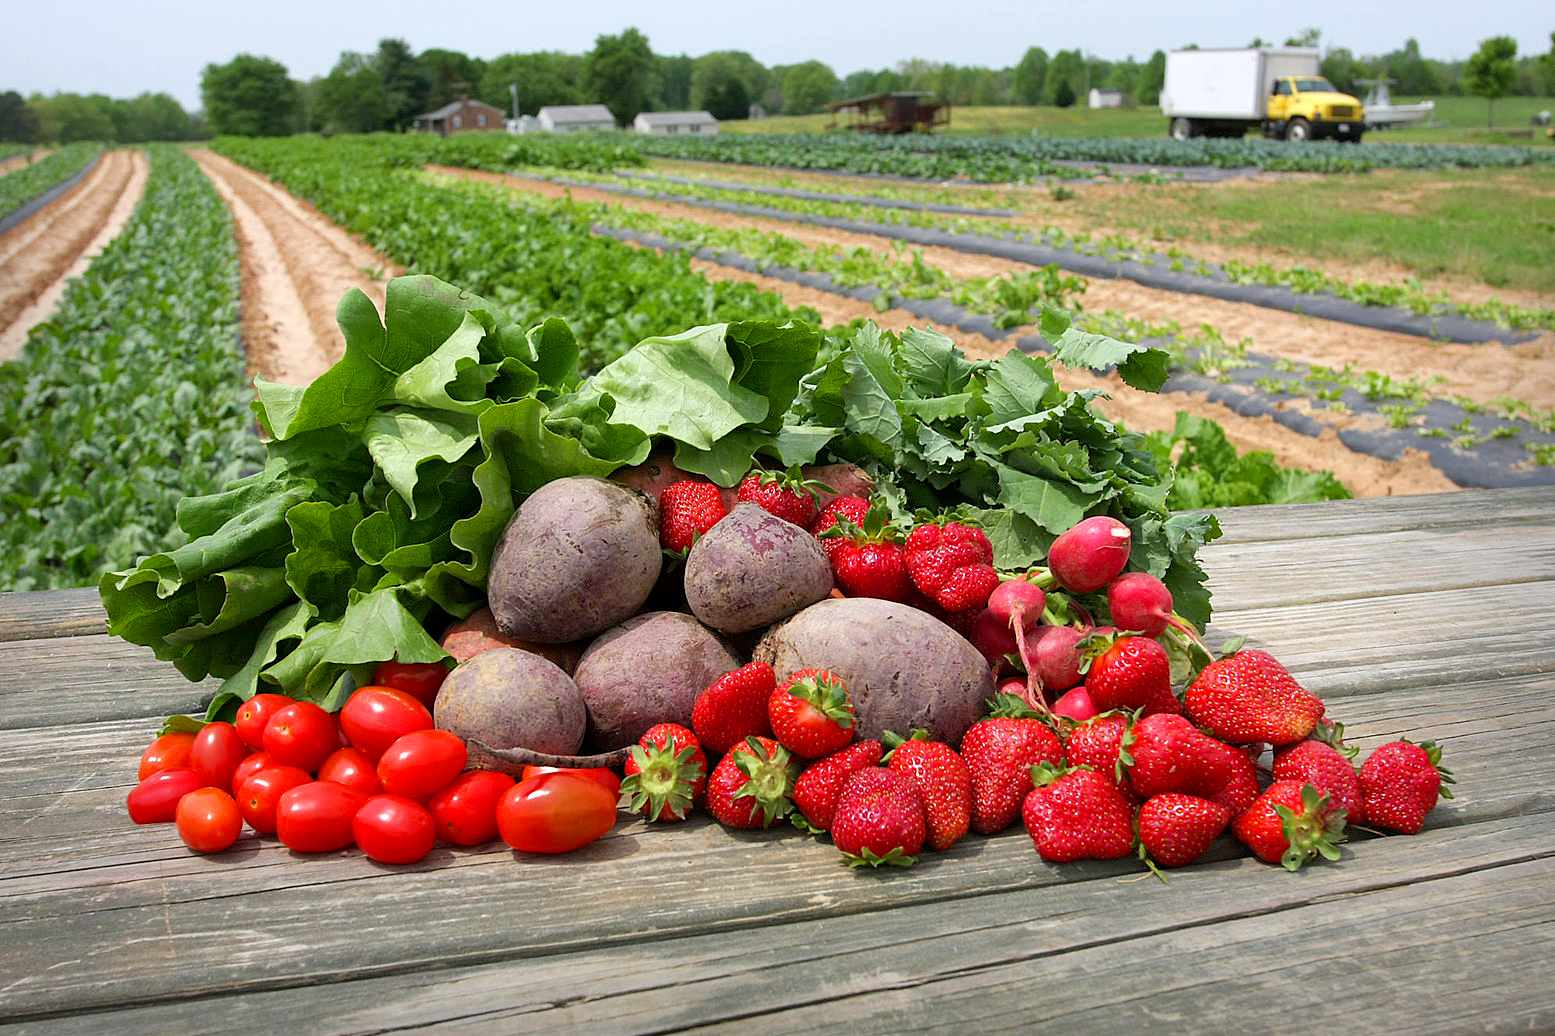 Fruits and veggies on top of a table overlooking a farm